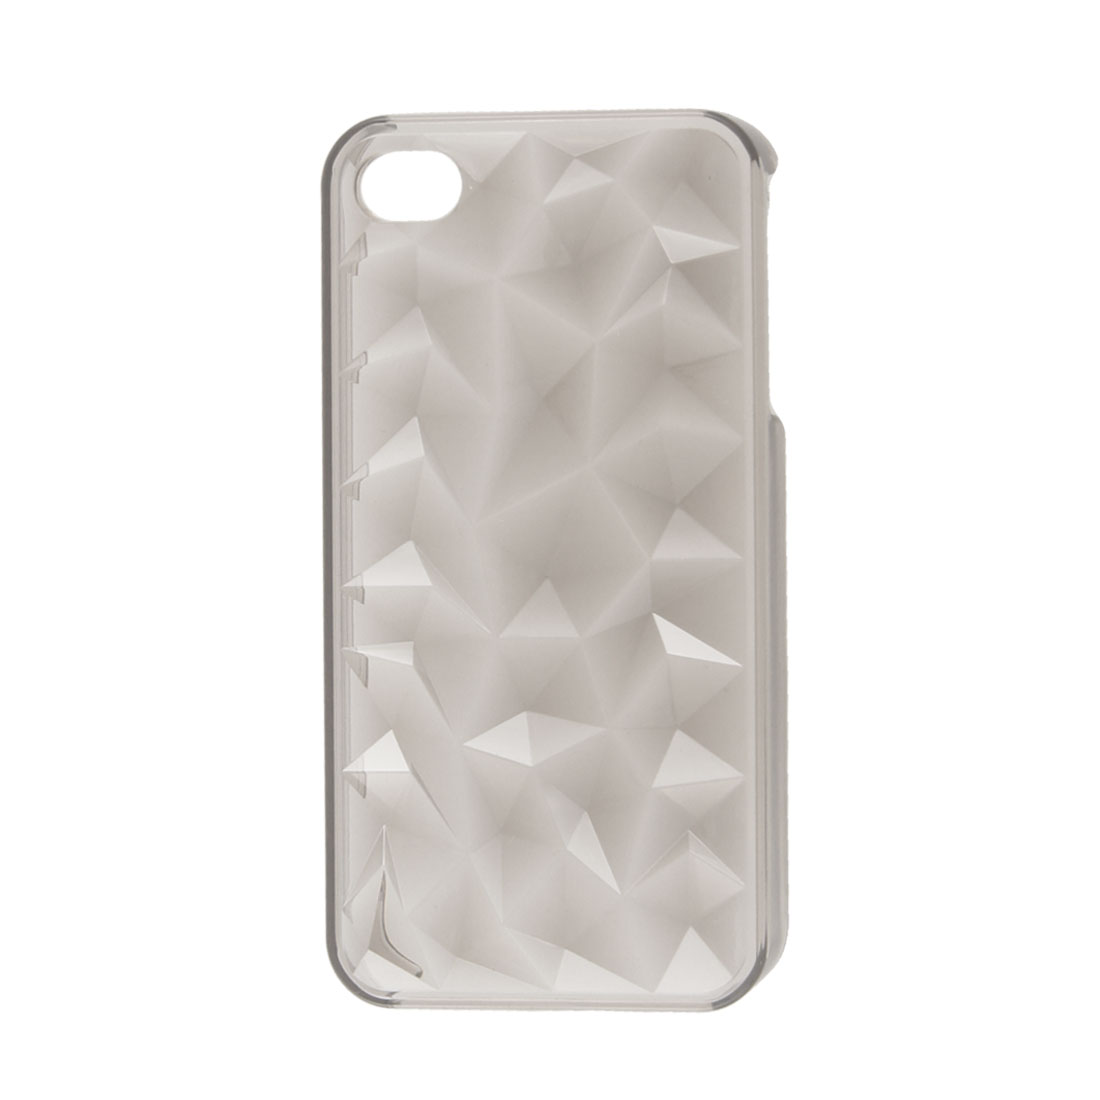 Protective Clear Grey Water Cube Style Plastic Back Guard for iPhone 4 4S 4GS